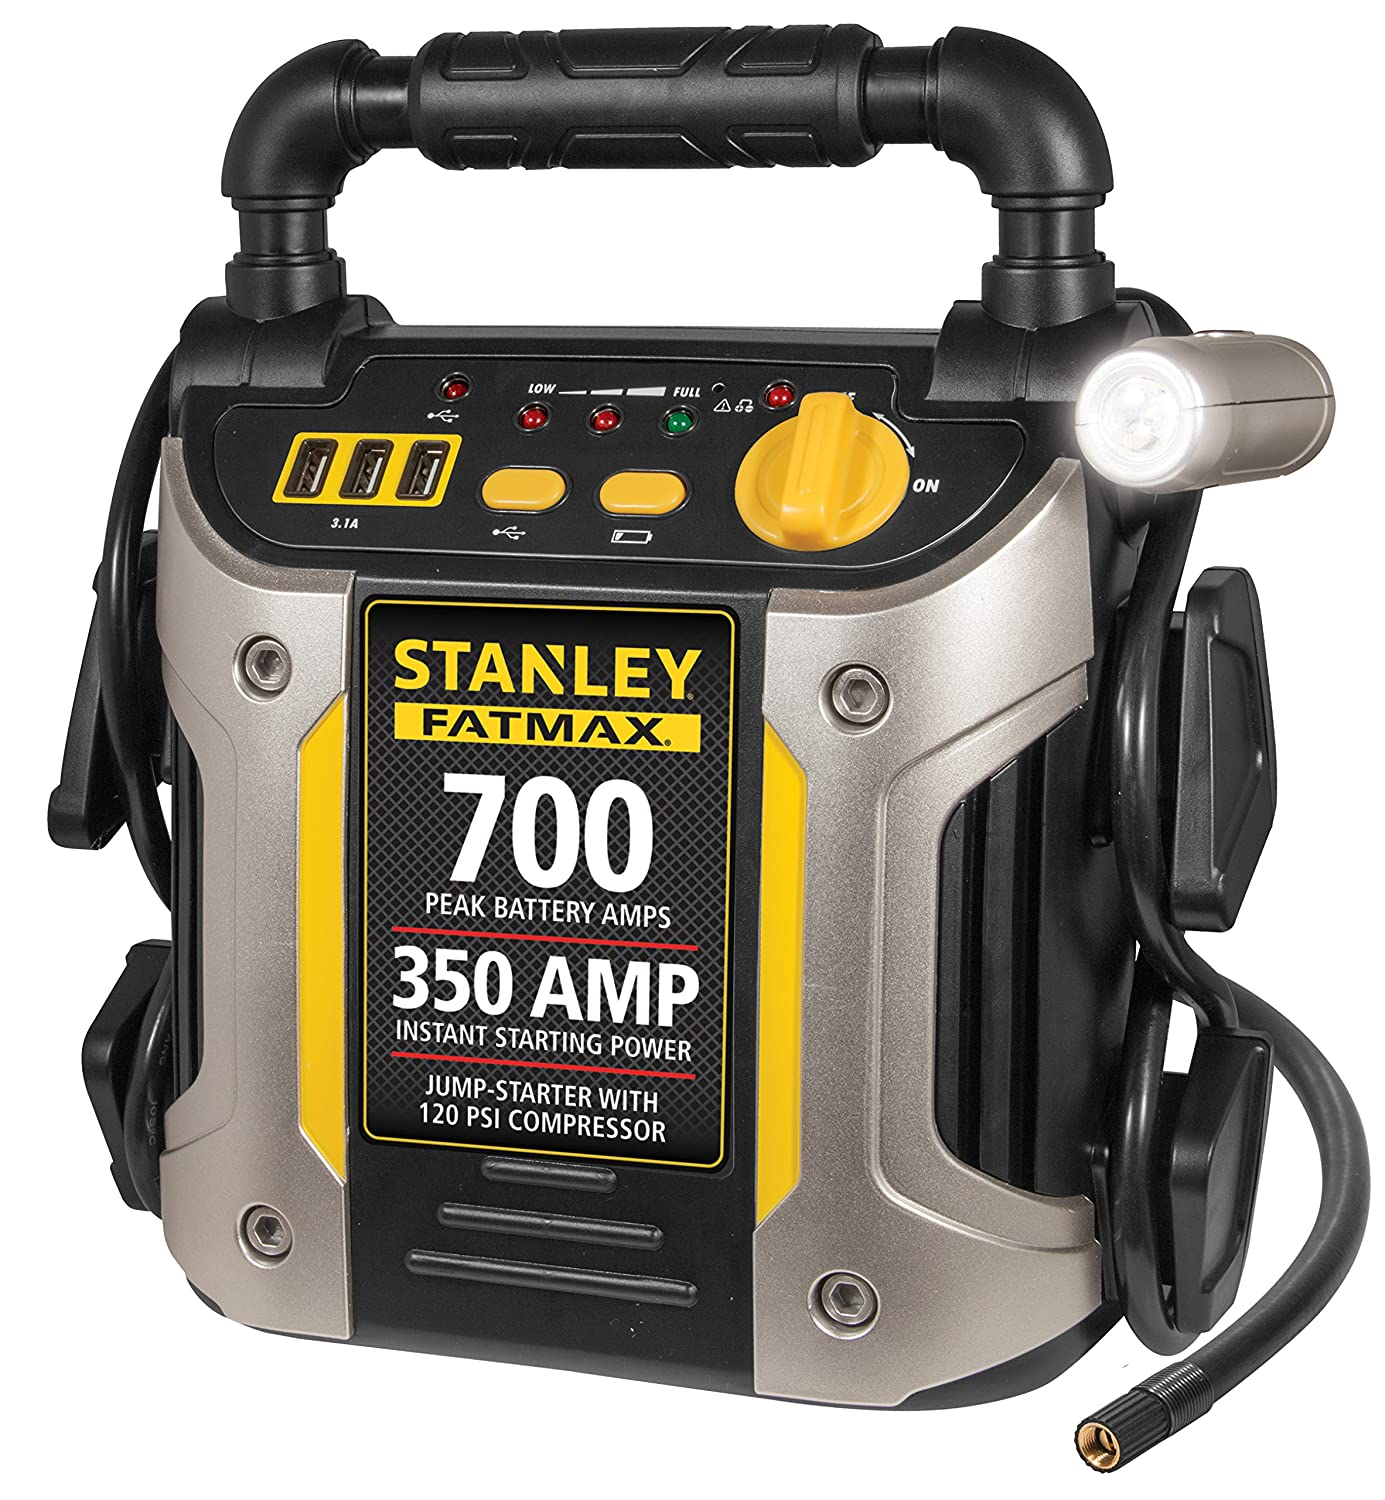 STANLEY FATMAX J7CS Power Station Jump Starter: 700 Peak/350 Instant Amps, 120 PSI Air Compressor, Battery Clamps